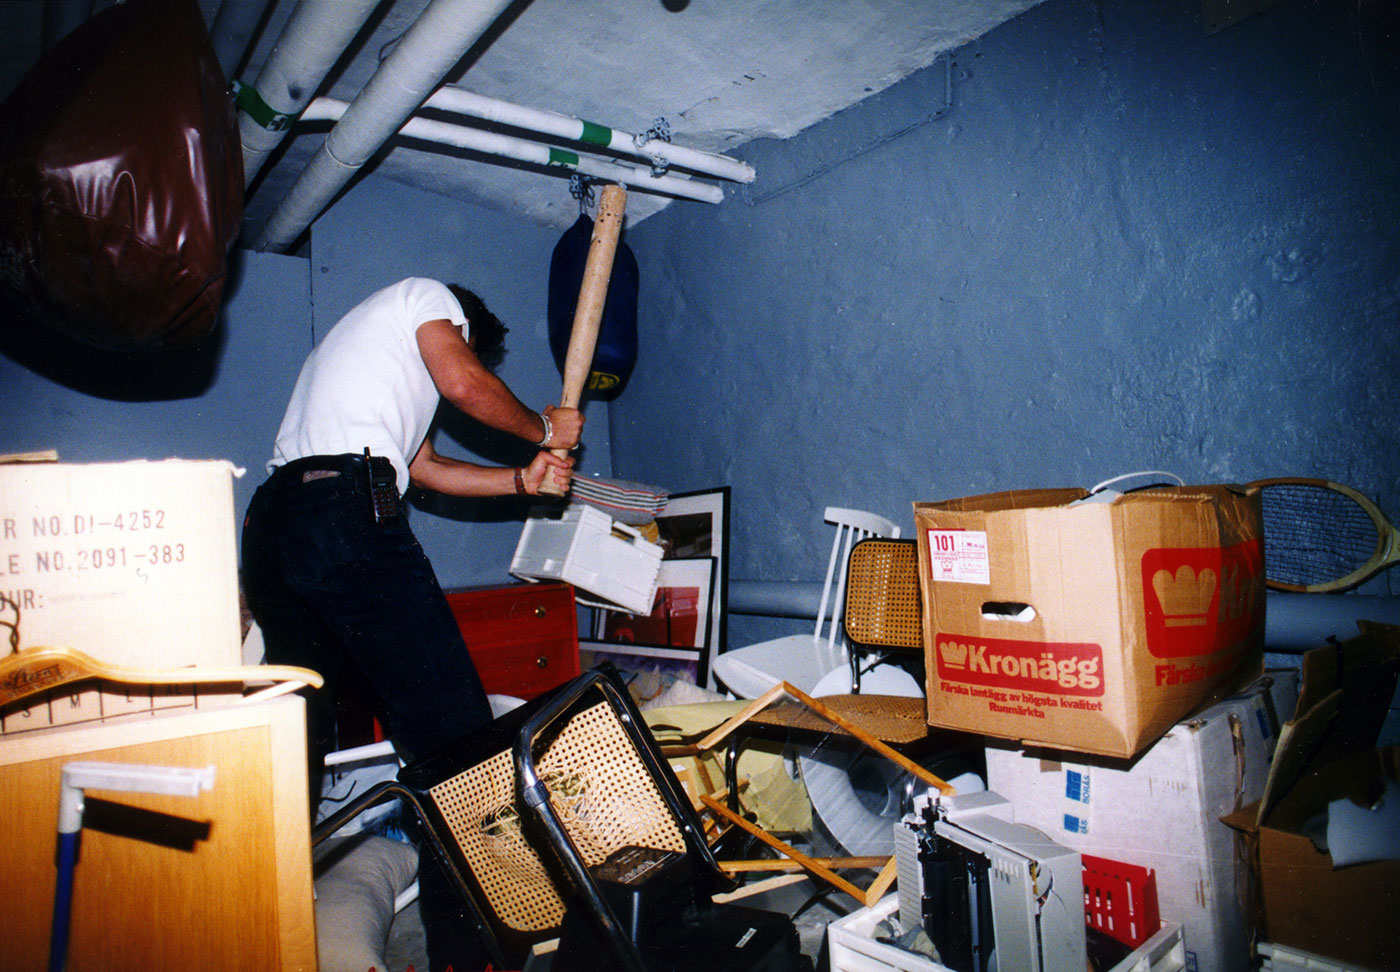 The hooligan is destroying one of the built up stores in the basement. Photo: Barometern, Östran